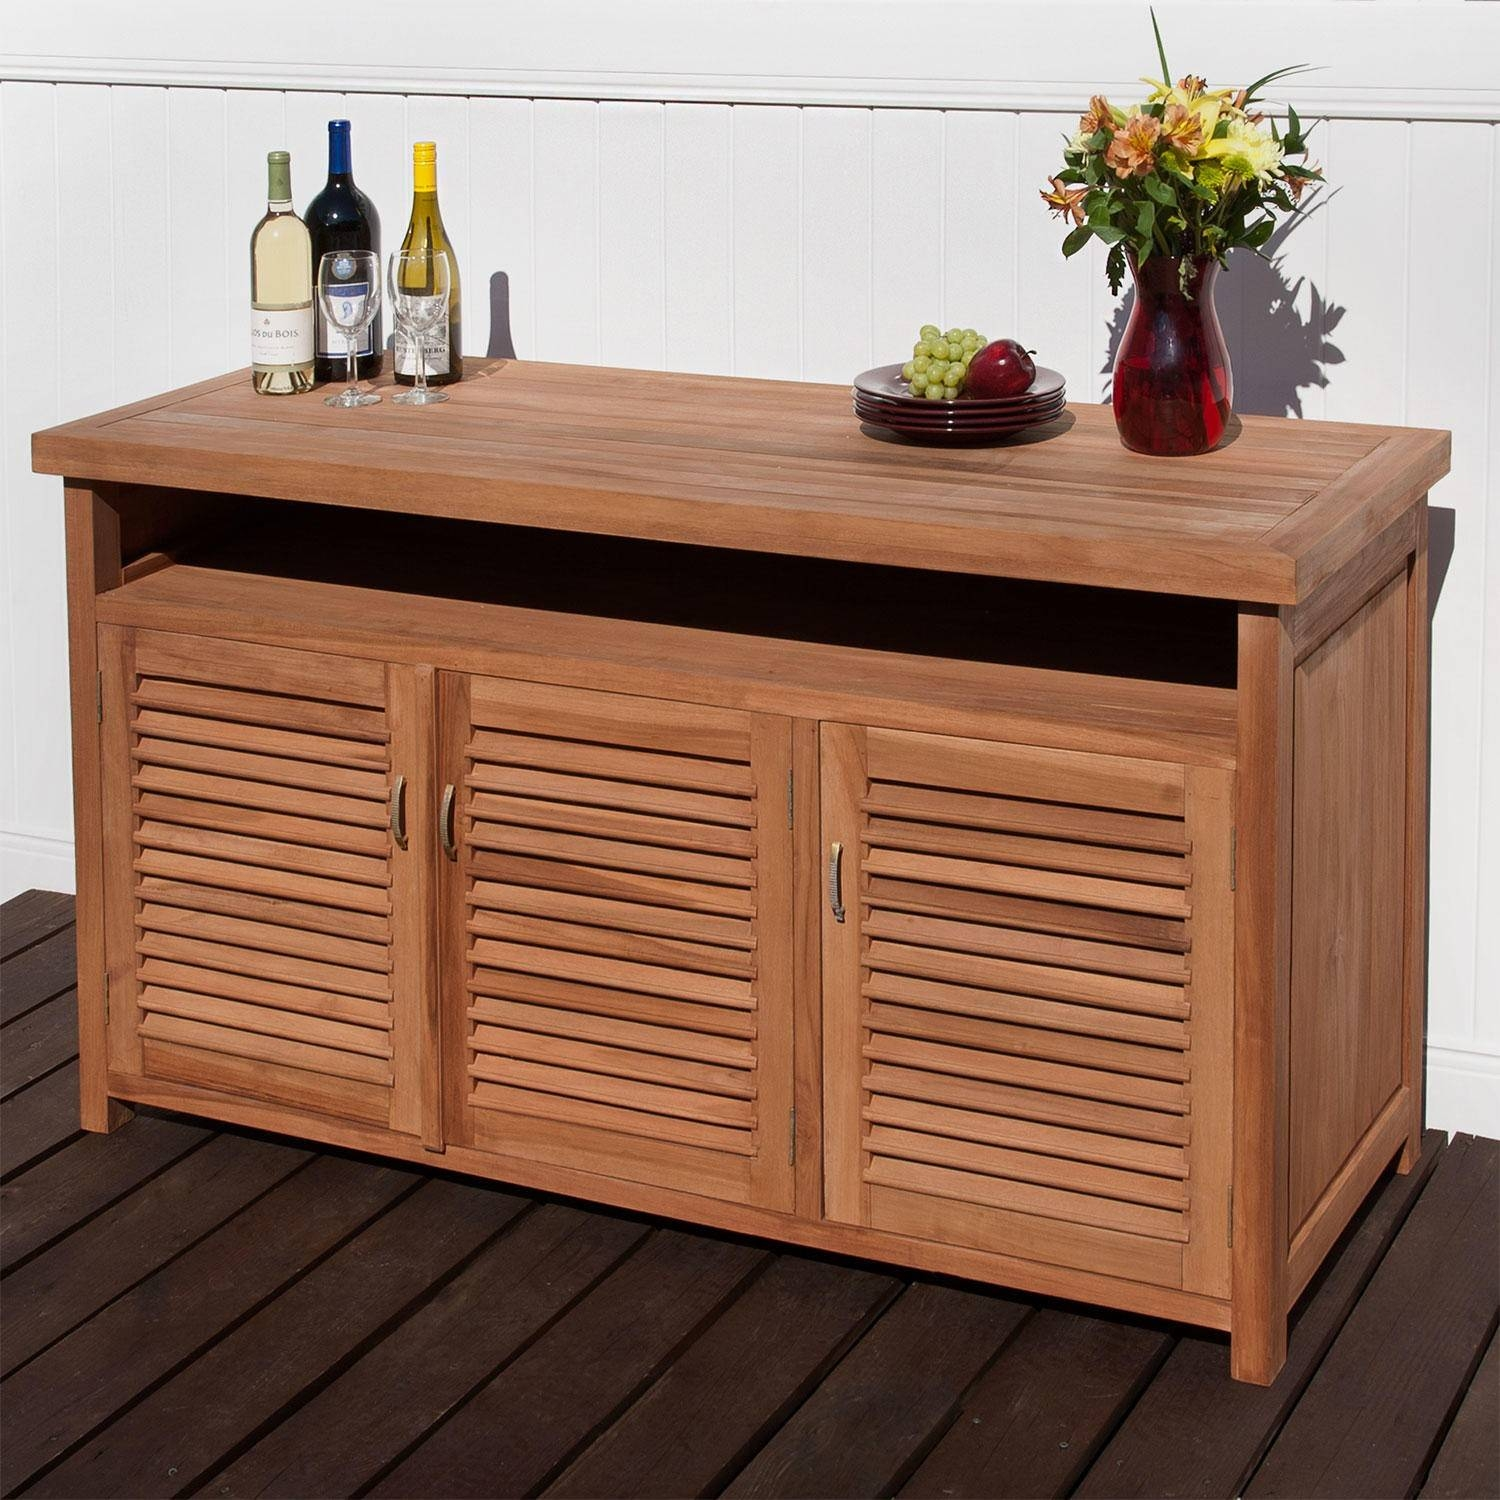 Teak Outdoor Buffet With Storage – Outdoor Within Outdoor Sideboards (View 2 of 15)